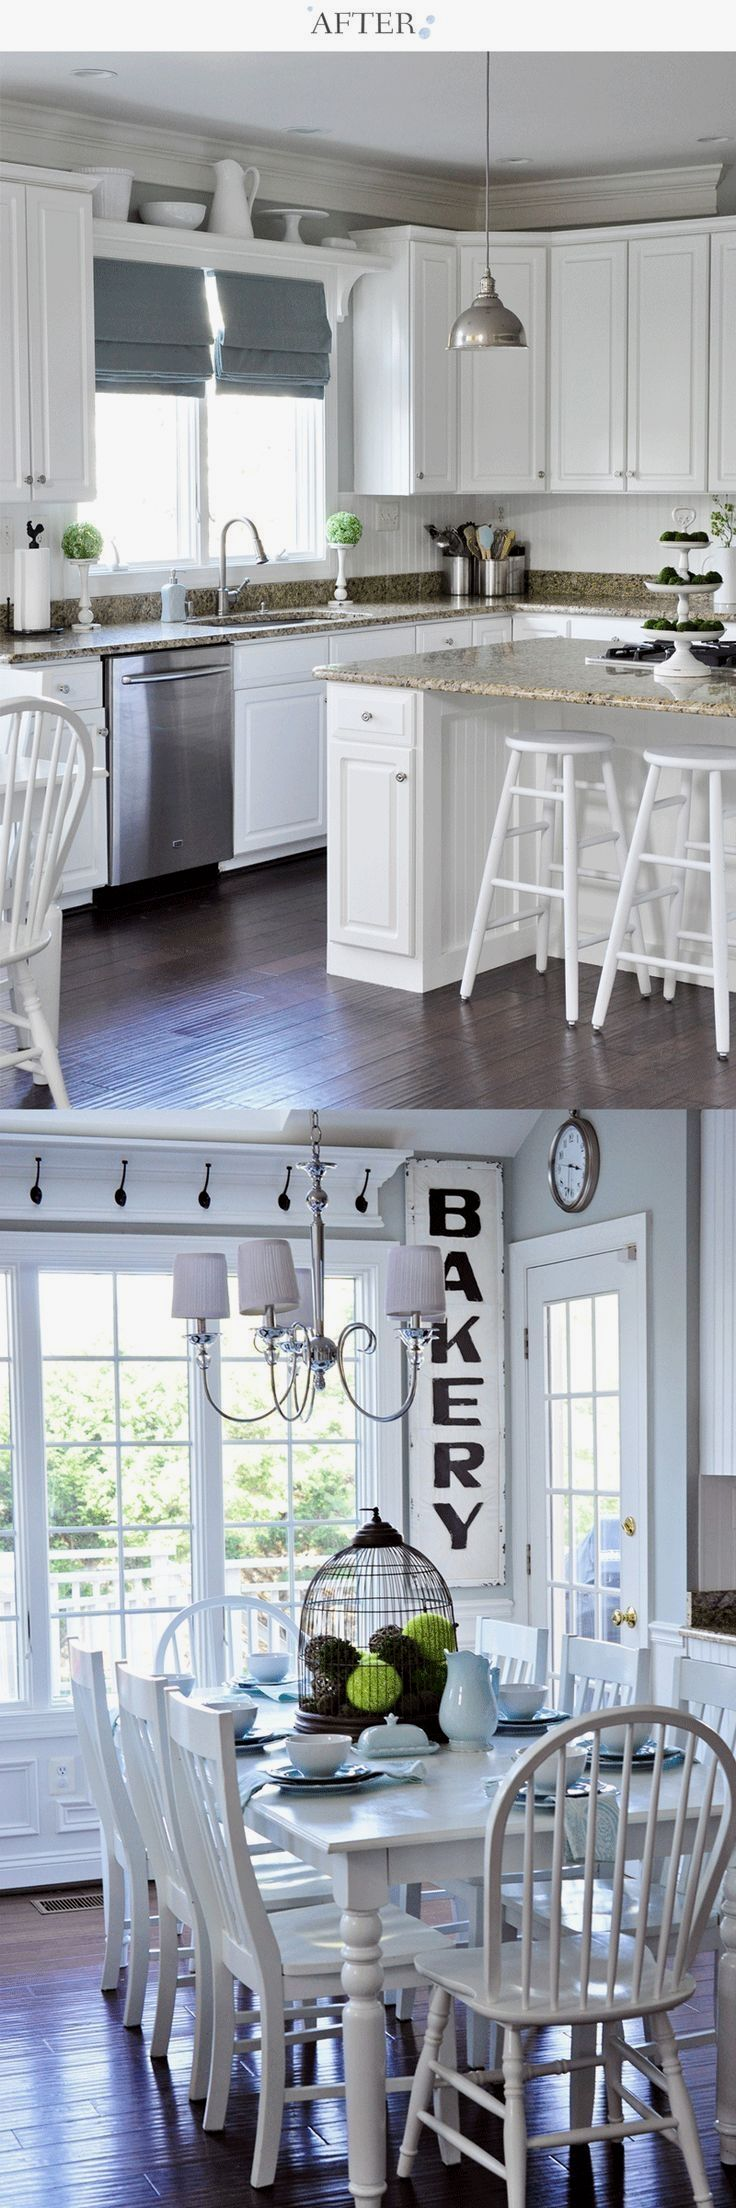 Window treatment ideas for above kitchen sink  pin by betsy roe on chabby chic beachy in   pinterest  kitchen